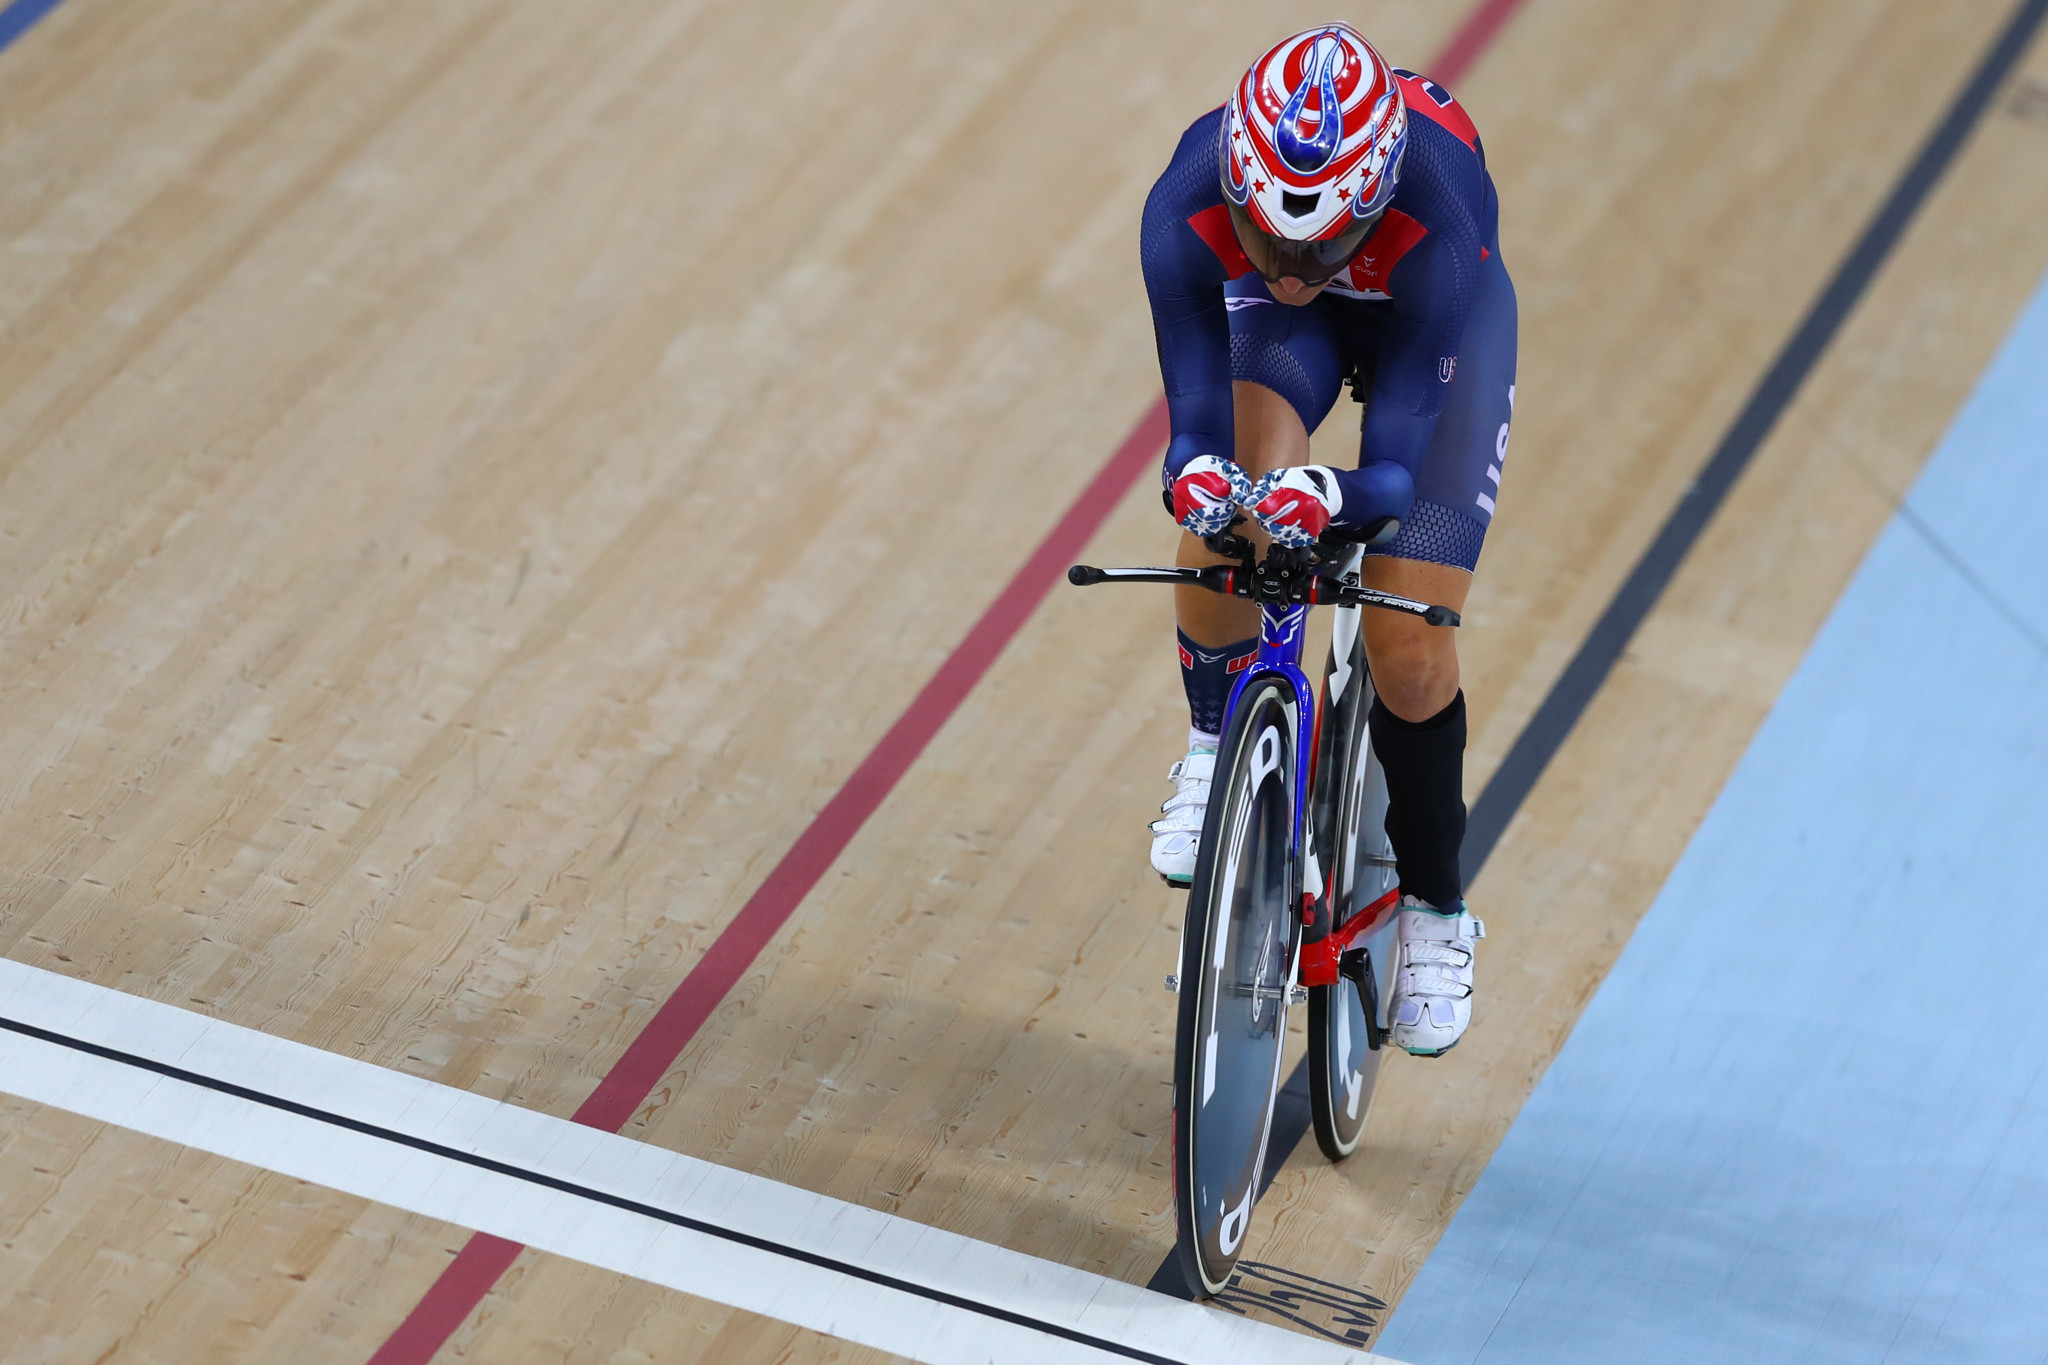 Jamie Whitmore is one of five Paralympians on the US women's team ©Getty Images